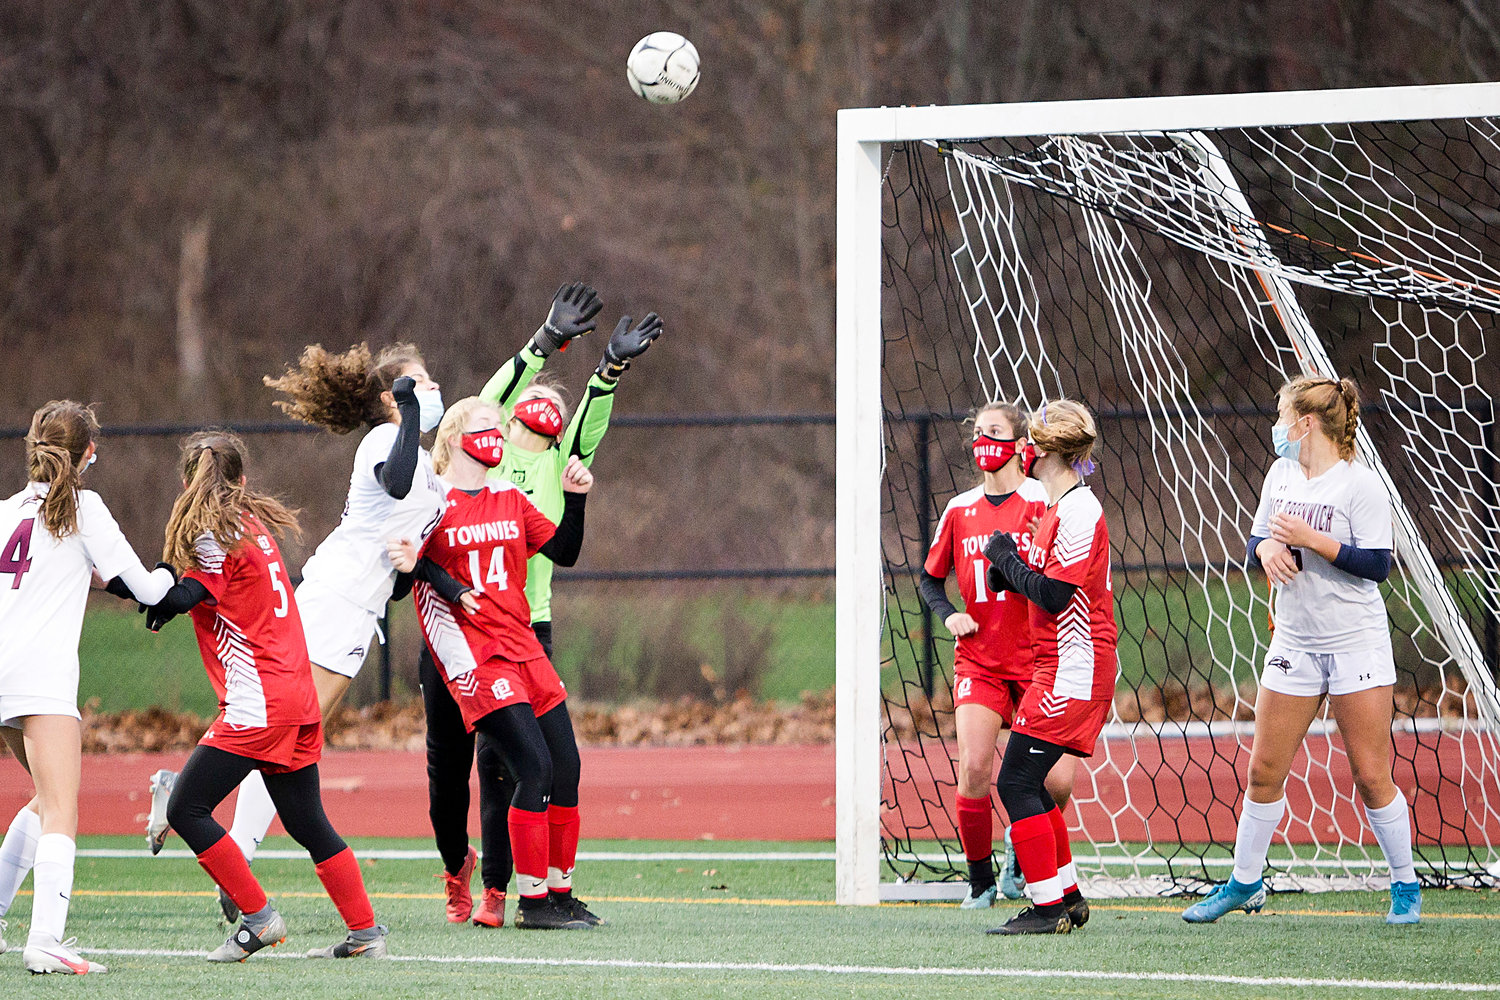 Goalie Kay Lee Davenport reaches to stop a corner kick during Sunday's Division II finals game, in Johnston.